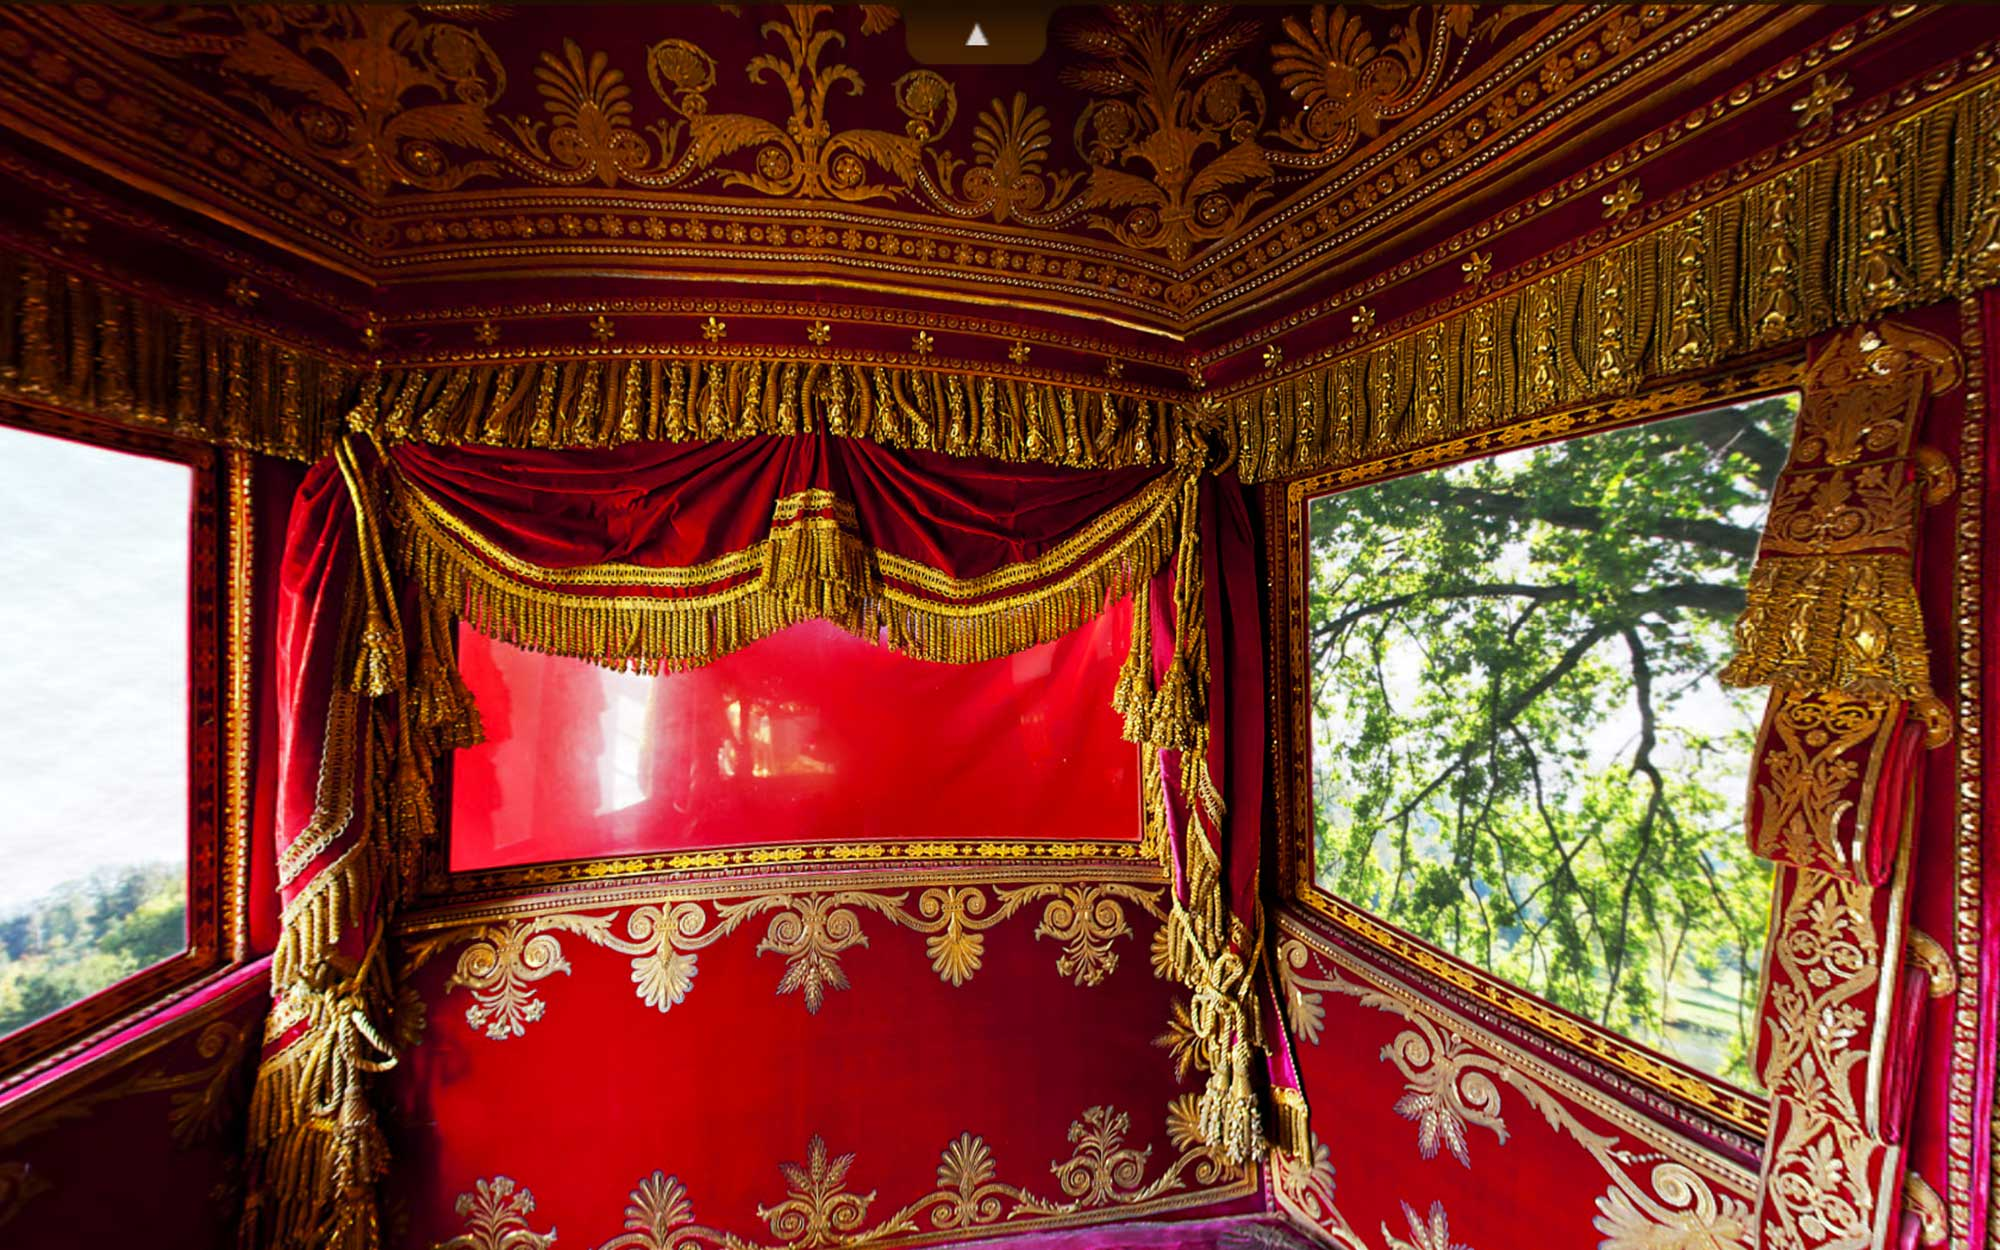 The Palace of Versailles Reopened their Stunning Carriage Collection